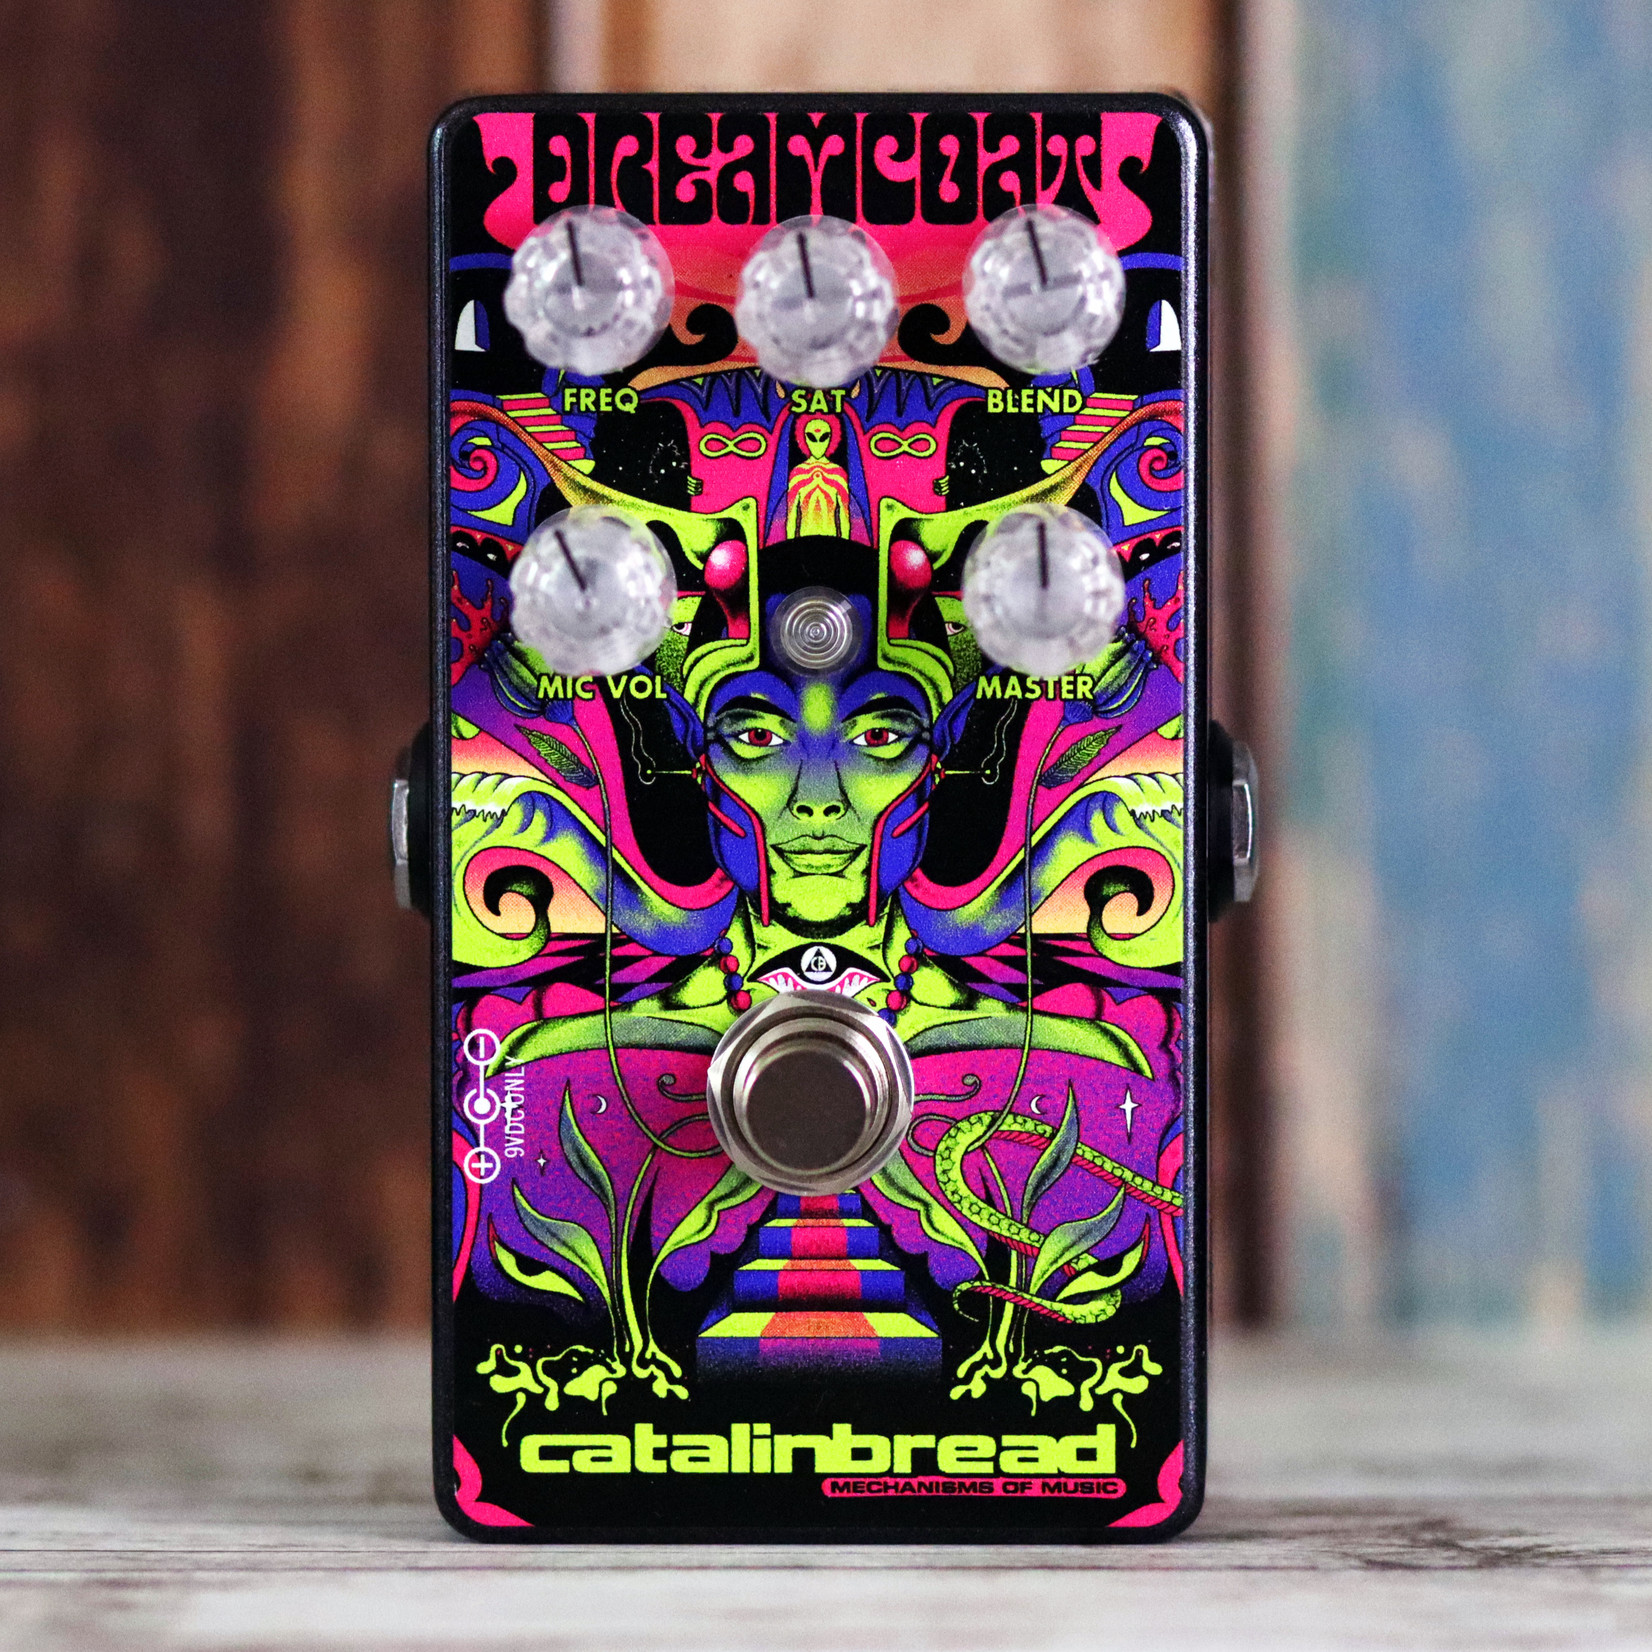 Catalinbread Catalinbread Dreamcoat - 60s-70s Blackmore-Inspired Tone (recreation of Aiwa TP-1011 preamp)